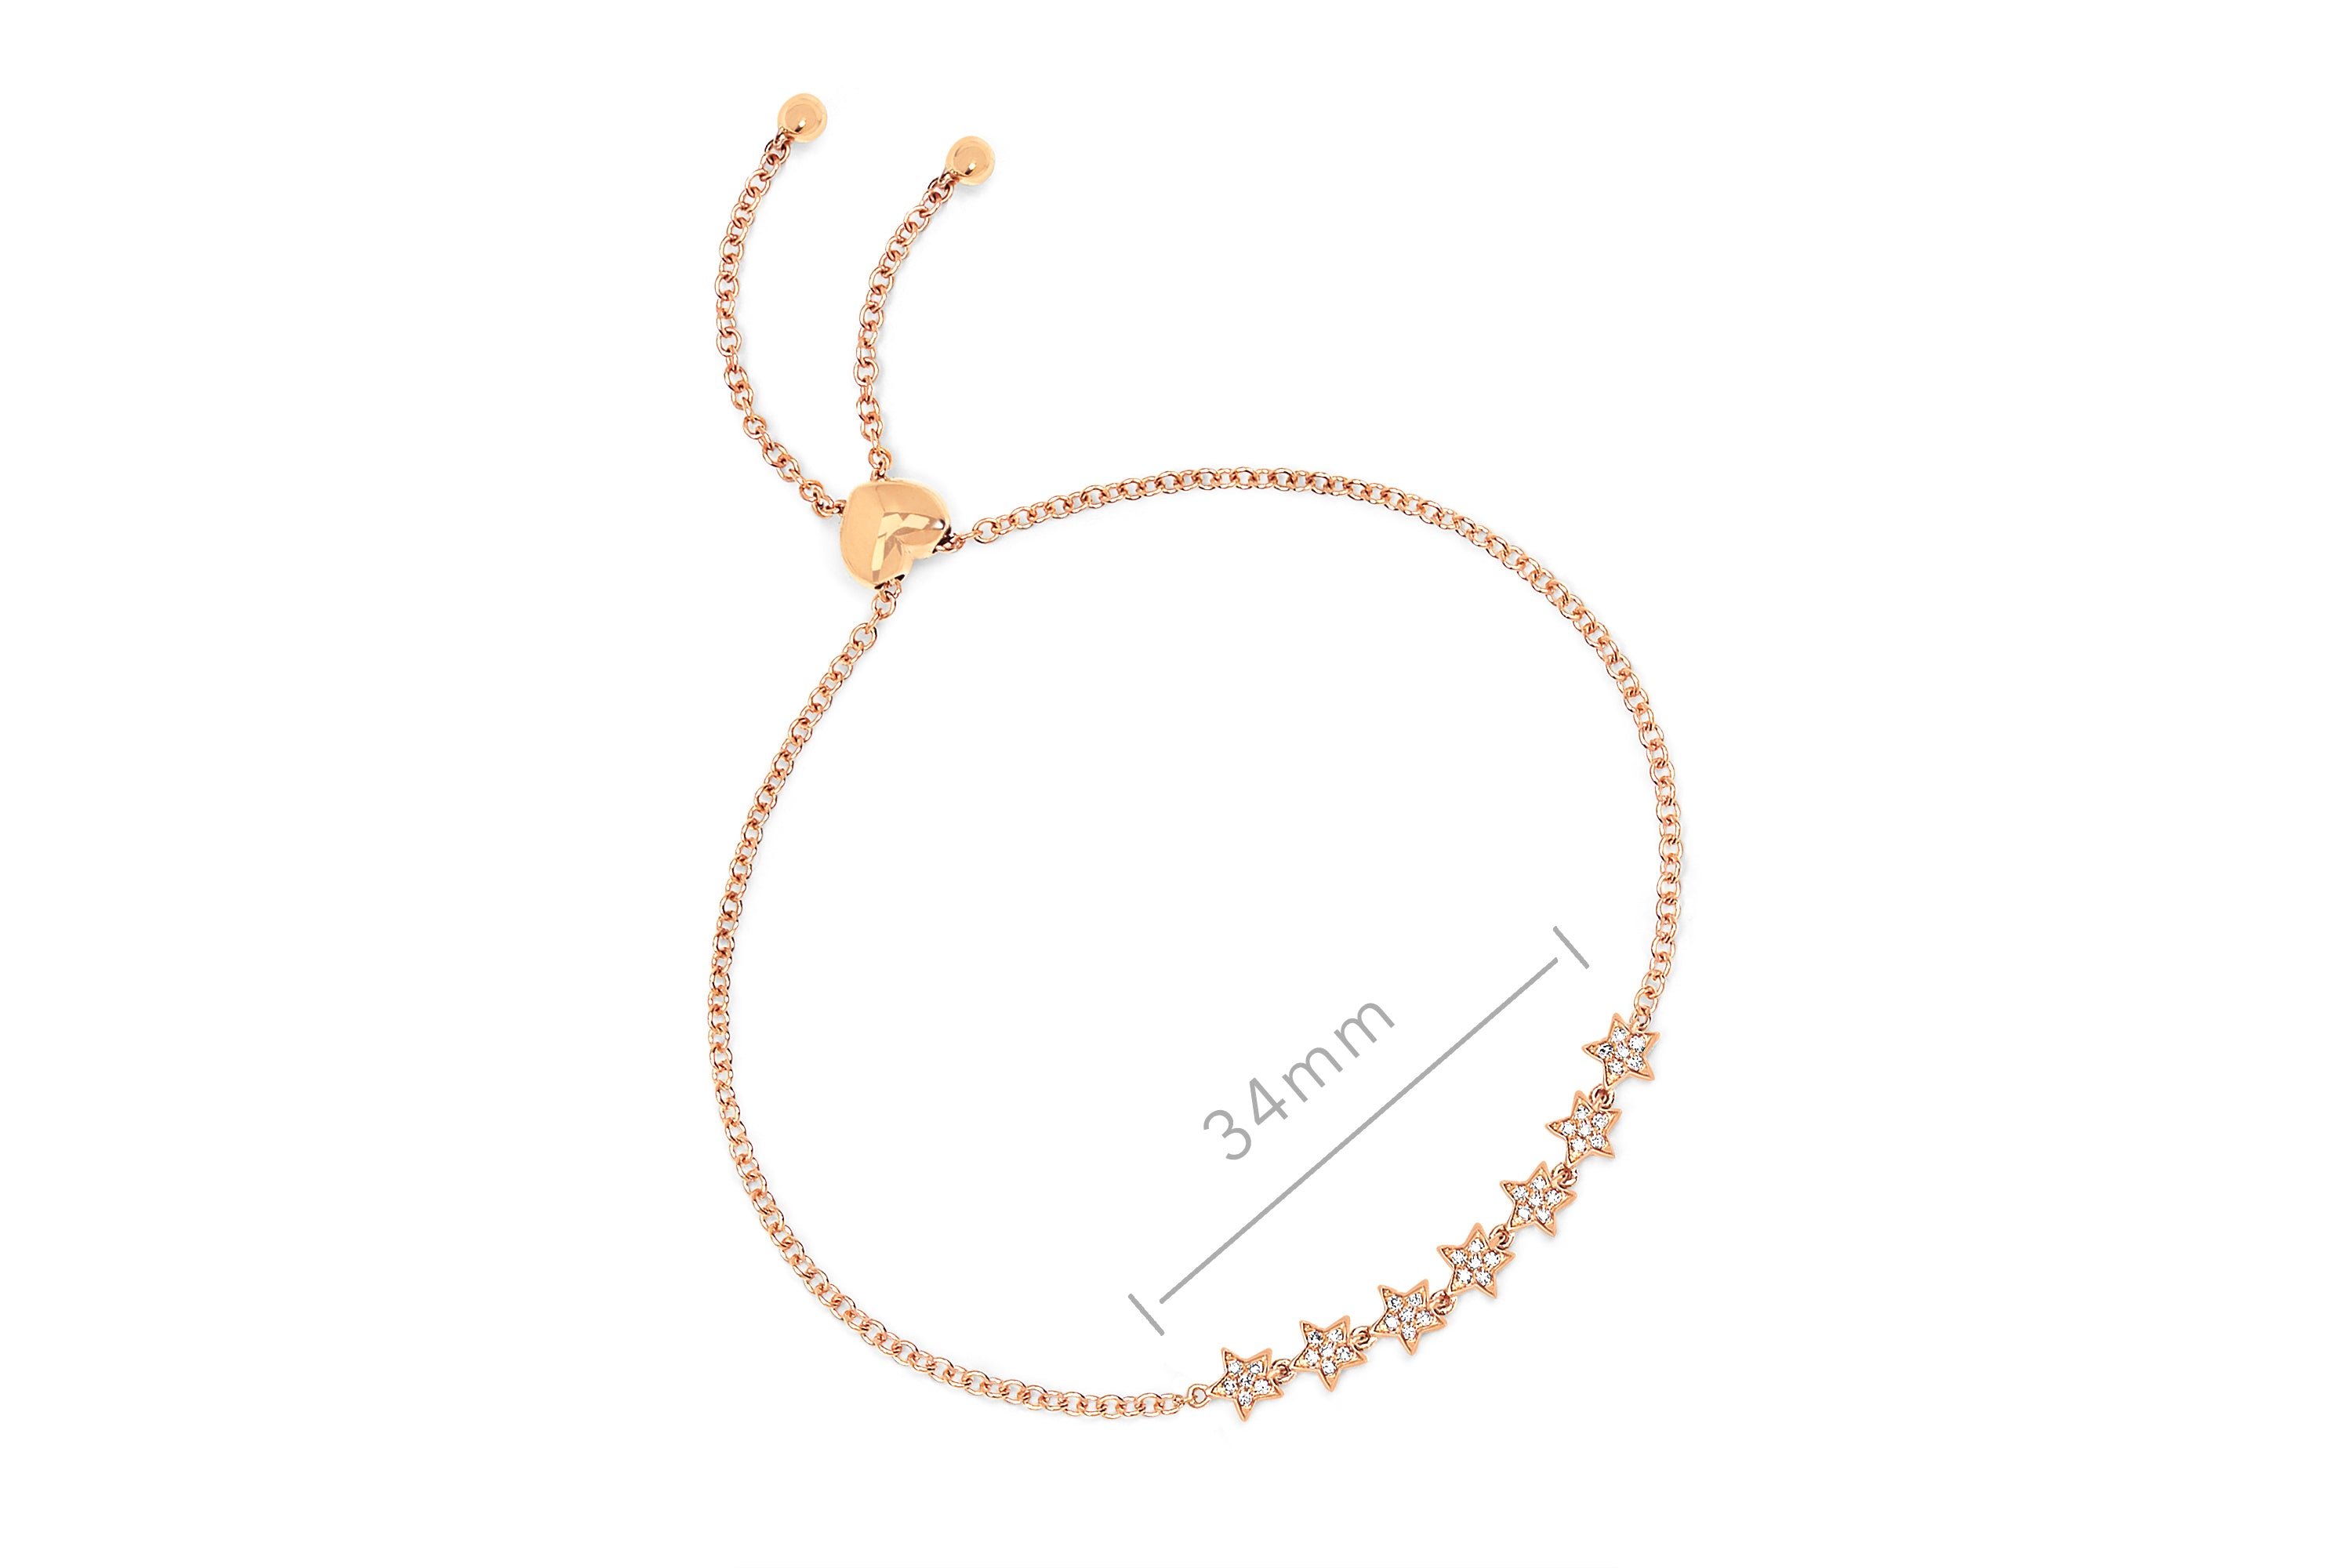 7 Diamond Mini Star Bolo Bracelet